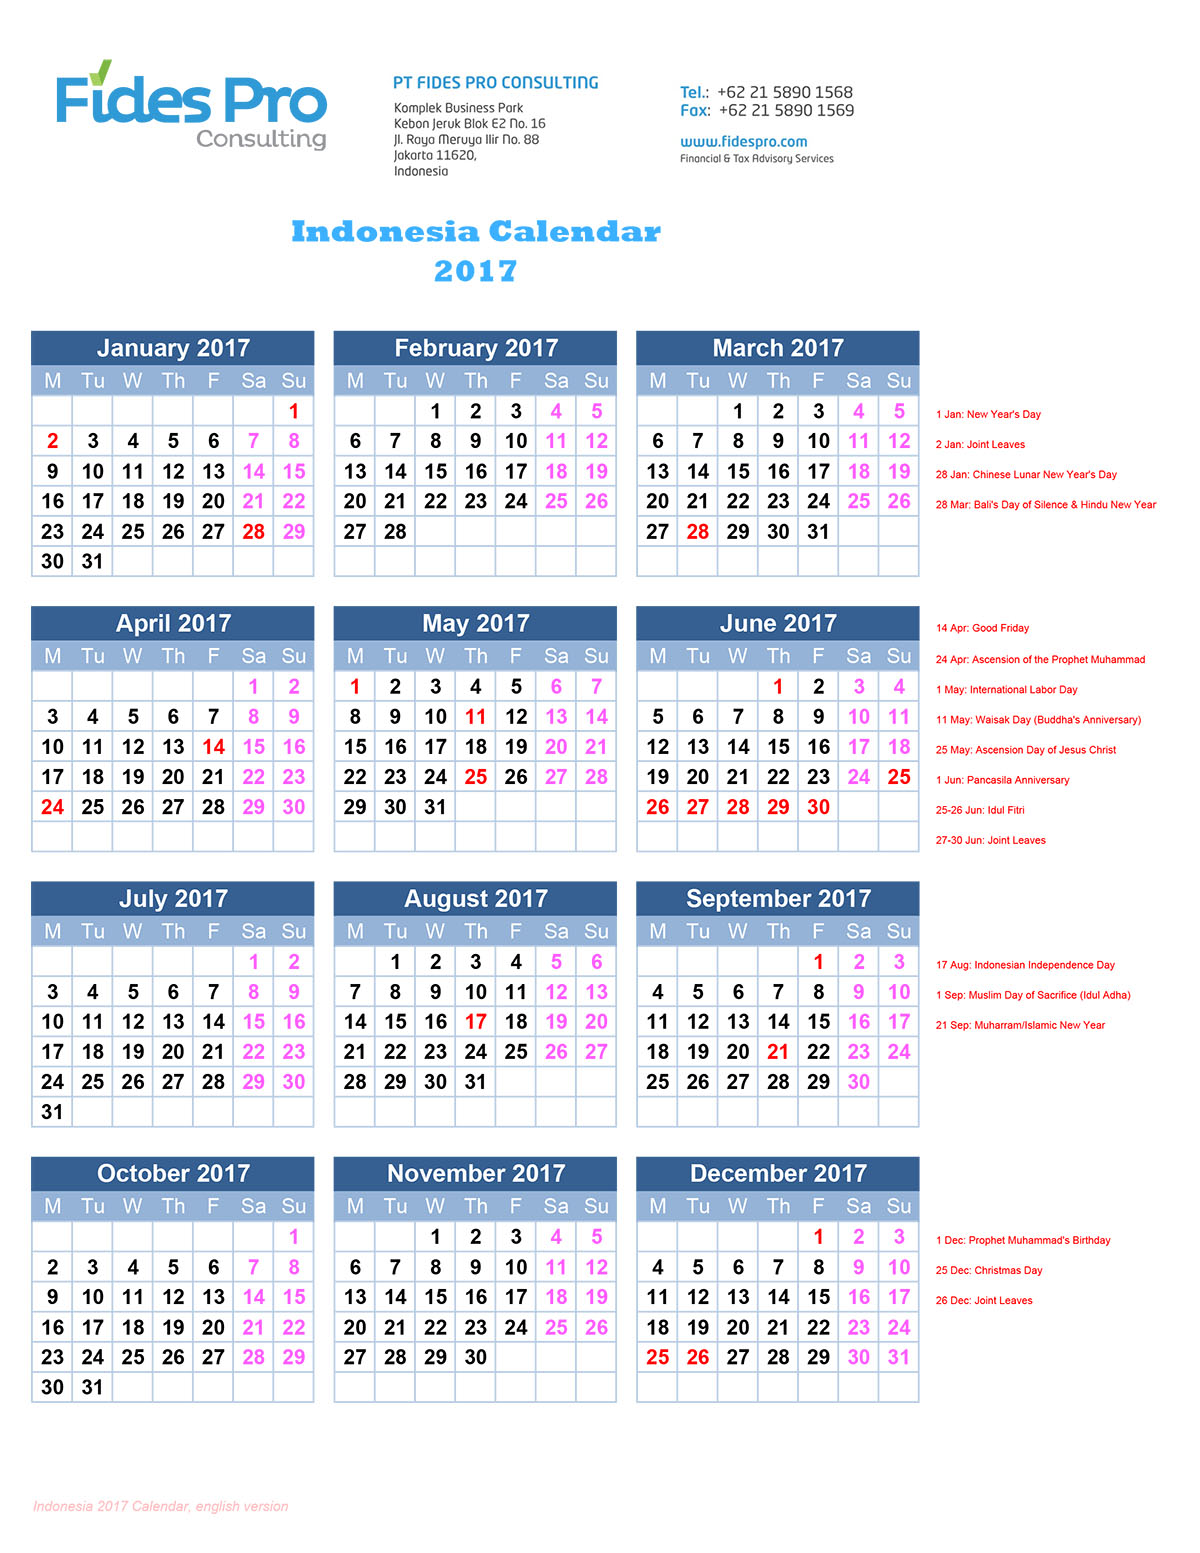 Indonesia Calendar_2017_english